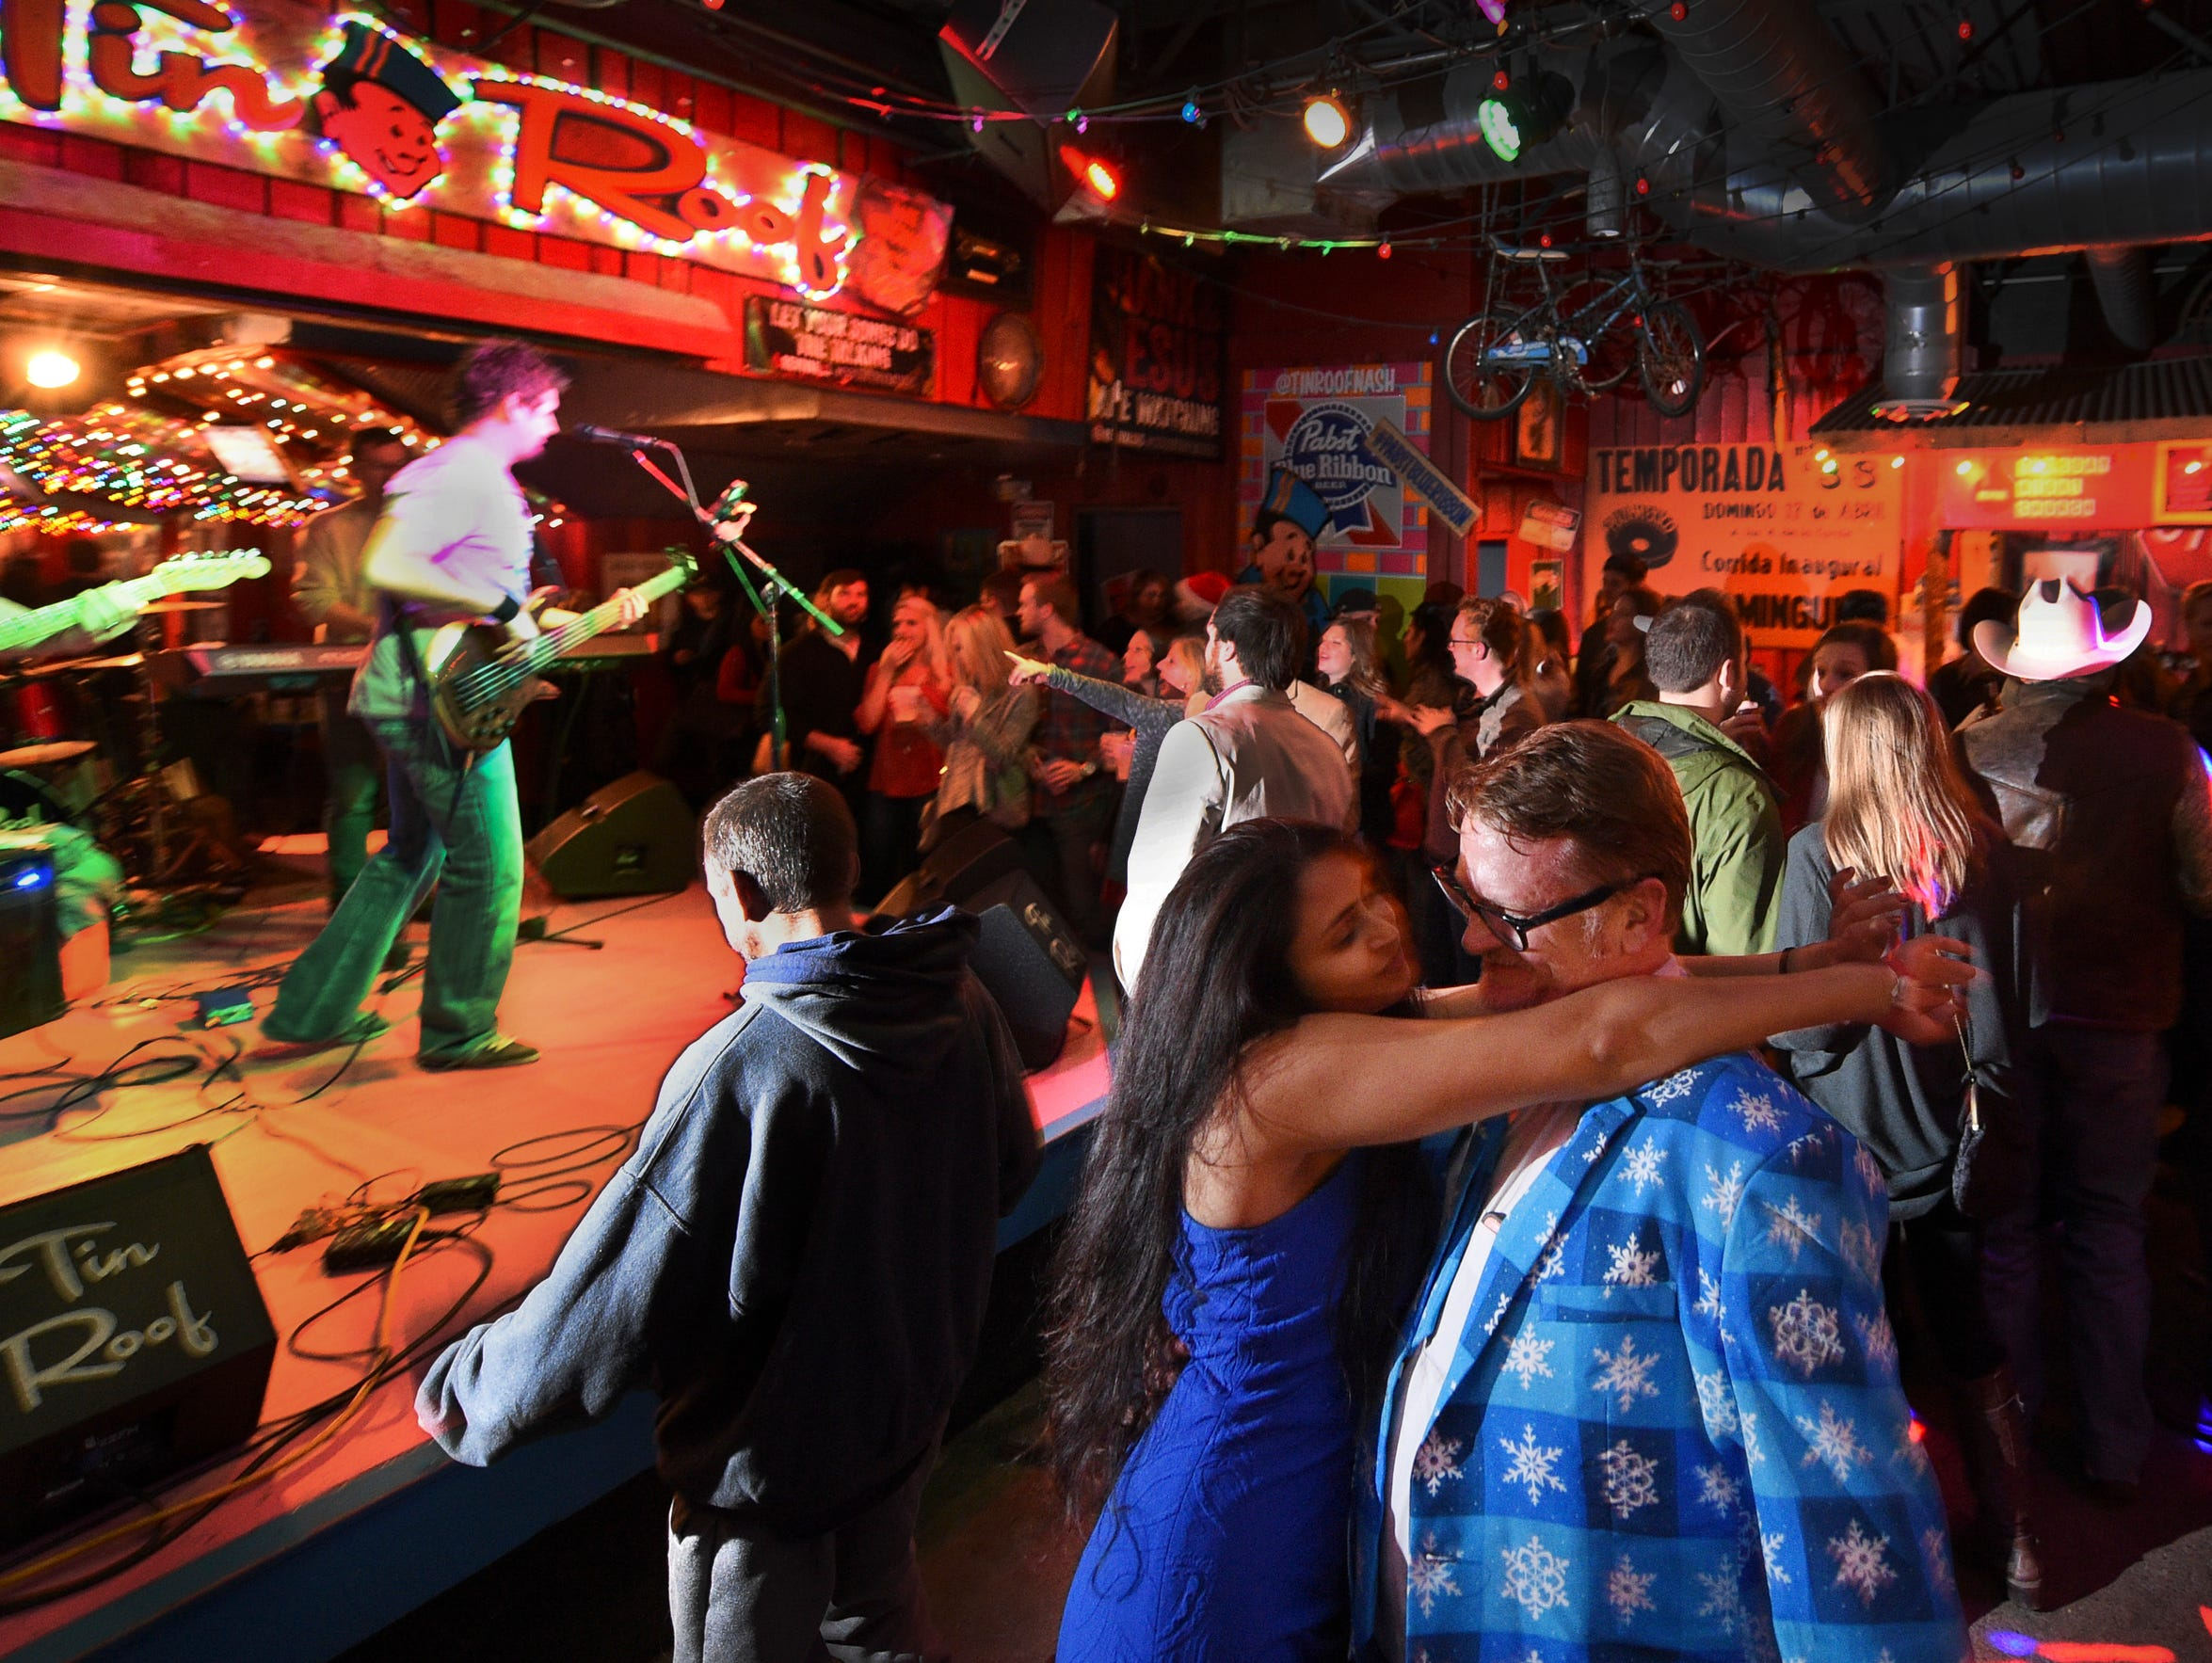 Rock 'n' roll band LoveTrucker performs at Tin Roof